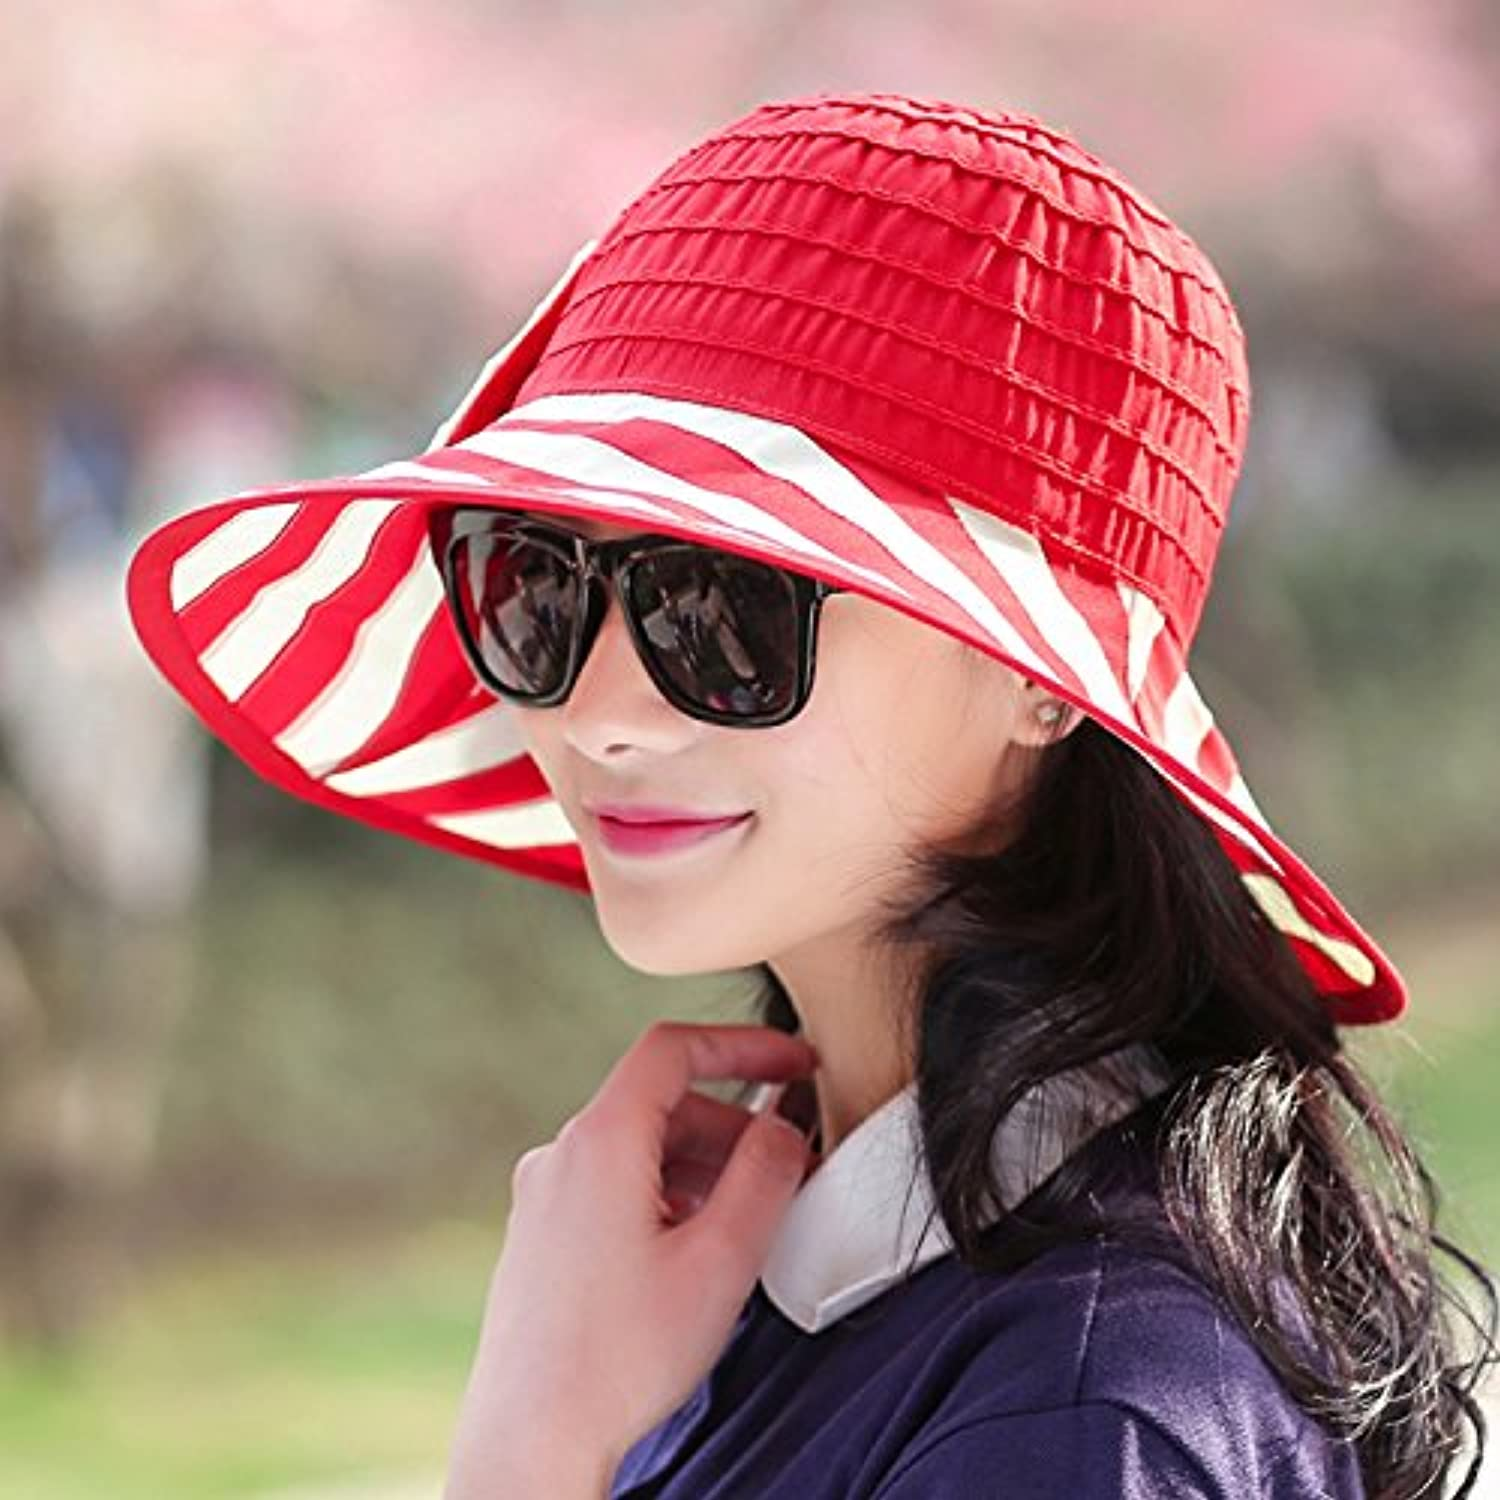 LONFENNENRSun Hats Summer uv Sunscreen Beach Cap can be Folded Seaside Large Along The Cap Hats Tour are Code (54-59cm) Red